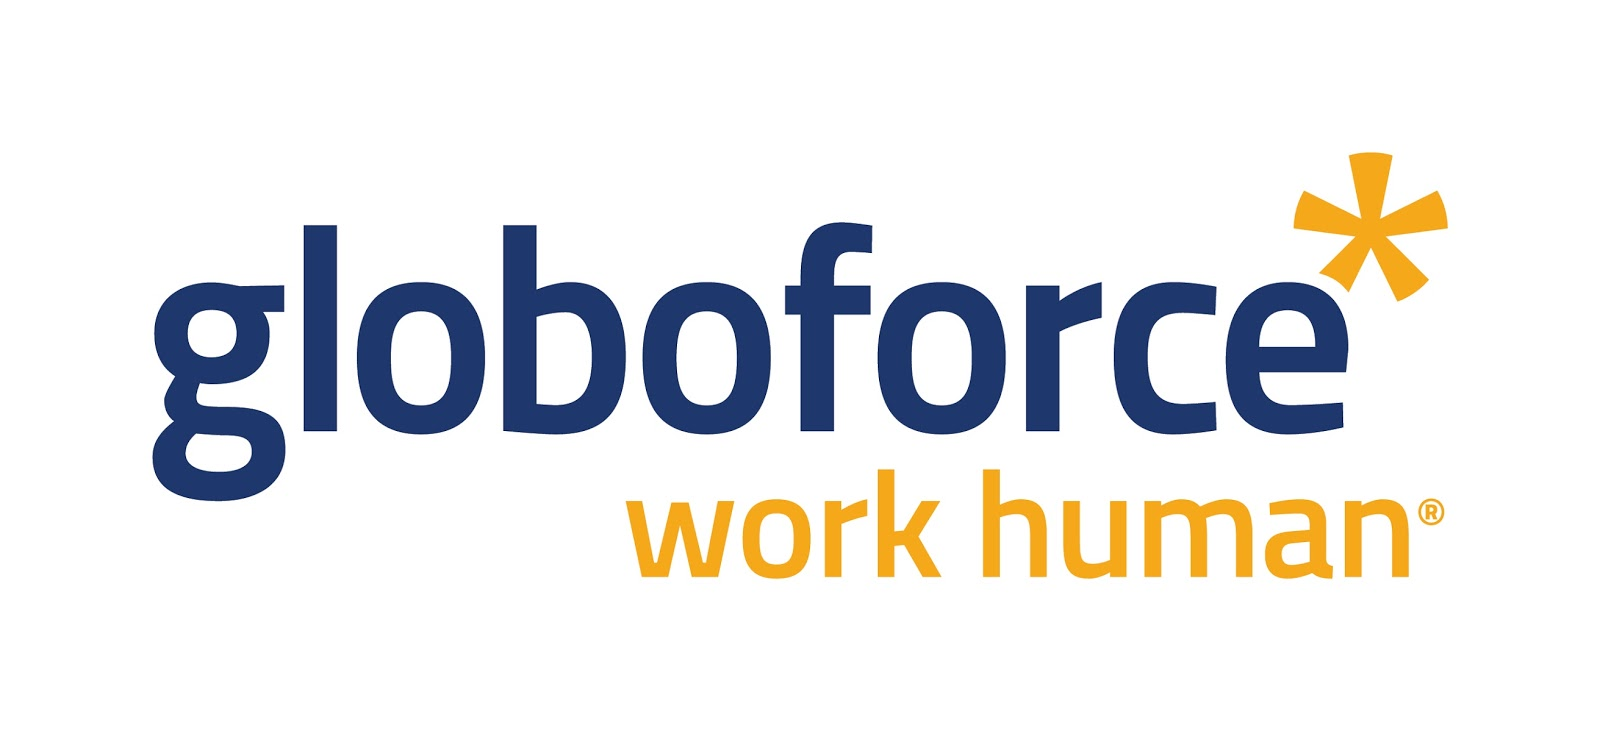 Event Report - Globoforce Workhuman 2018 - | Enterprise Software